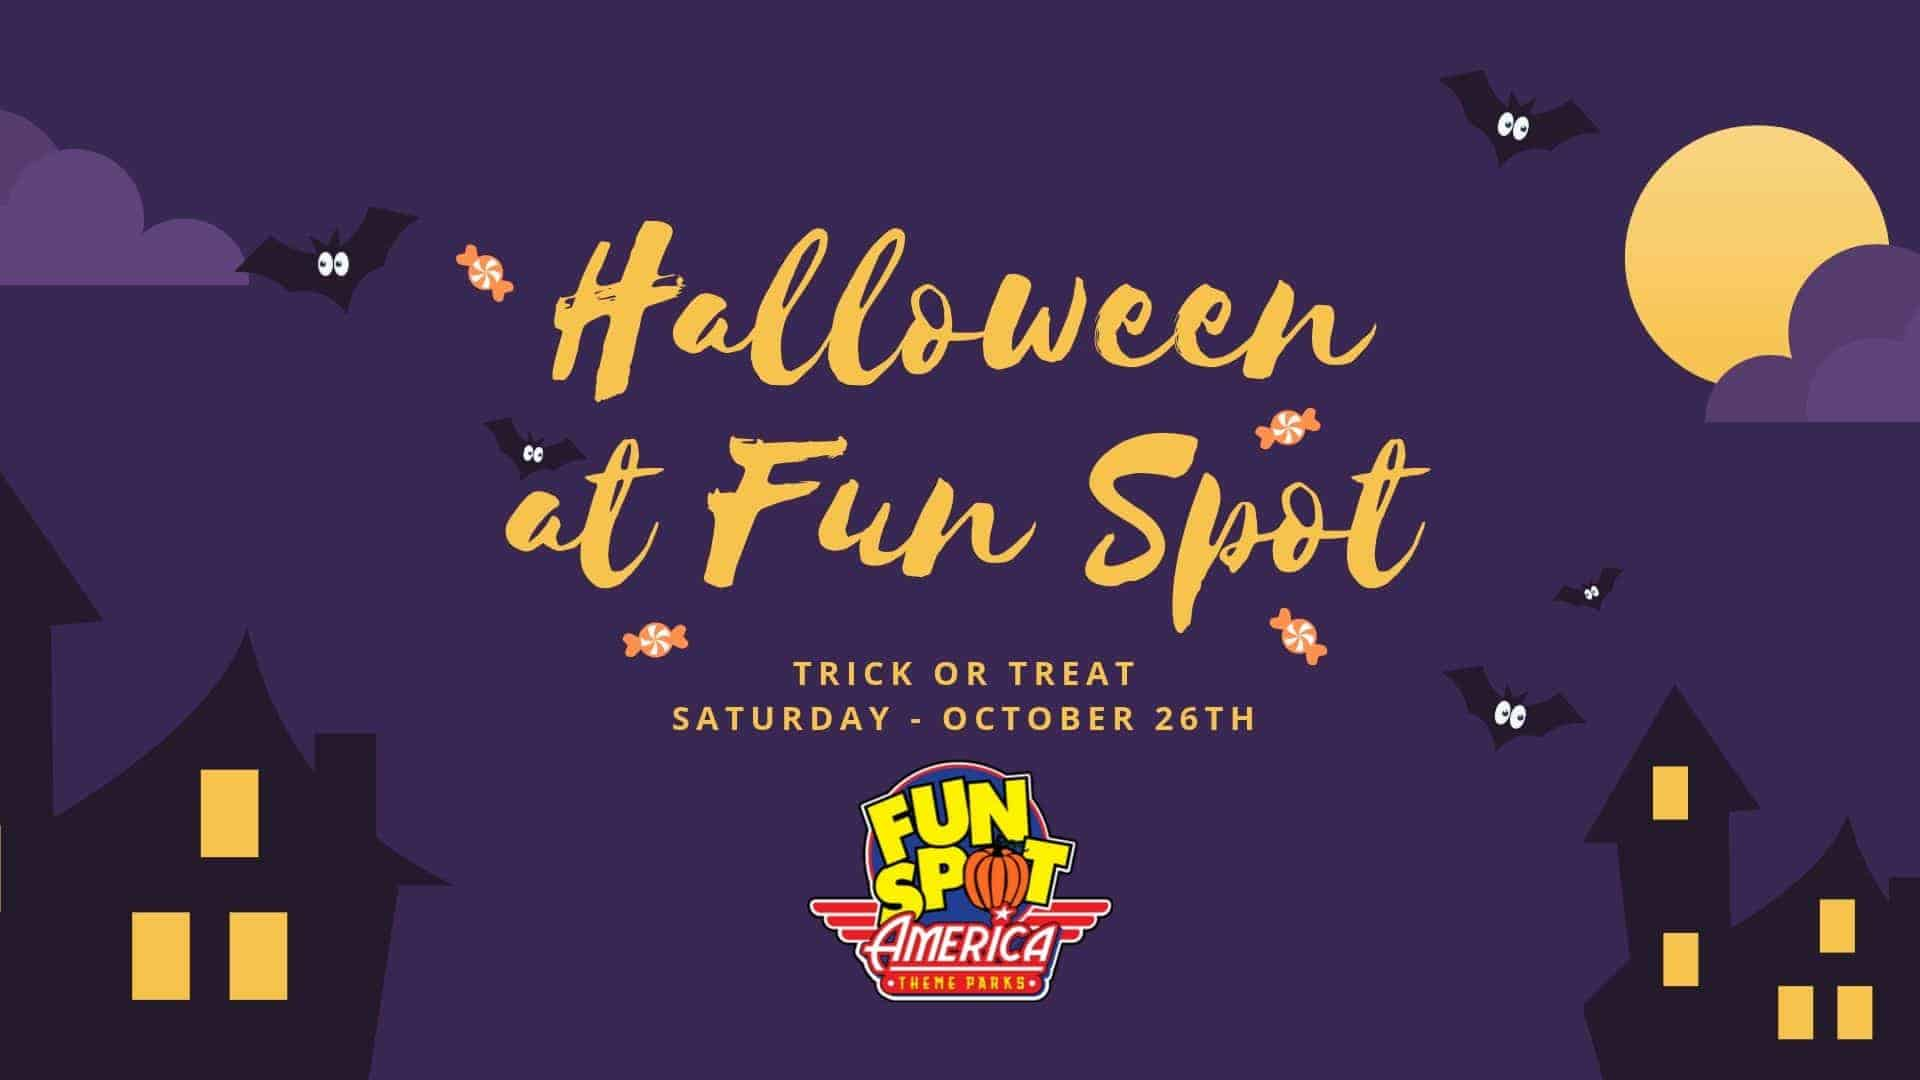 10/26-Halloween at Fun Spot America Atlanta